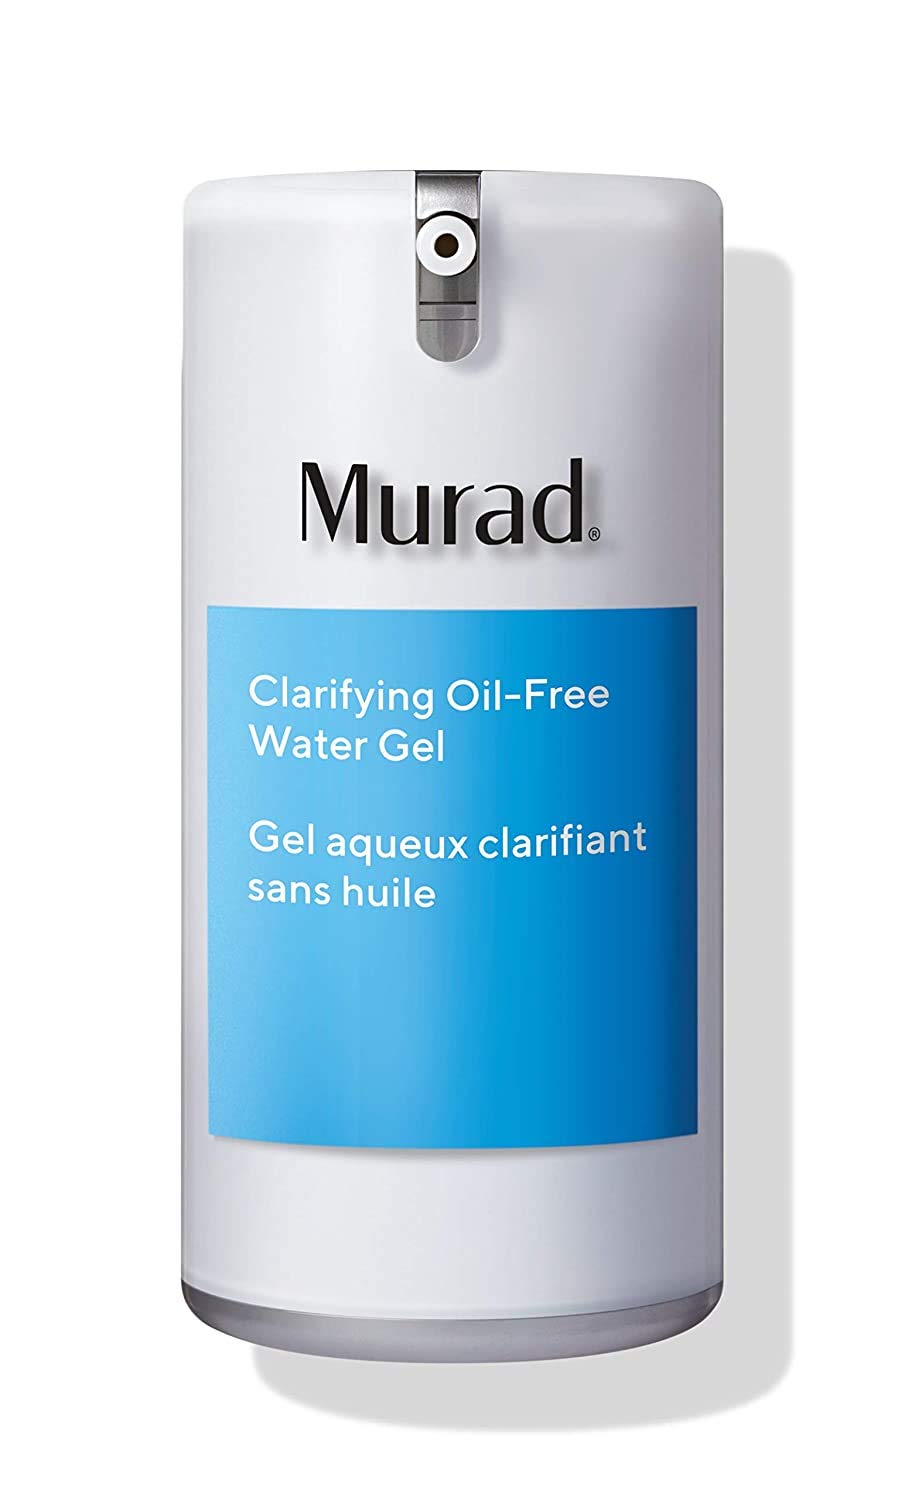 Charlotte Mall Murad High quality Clarifying Water Gel - Moisturizer Face Wome for Hydrating